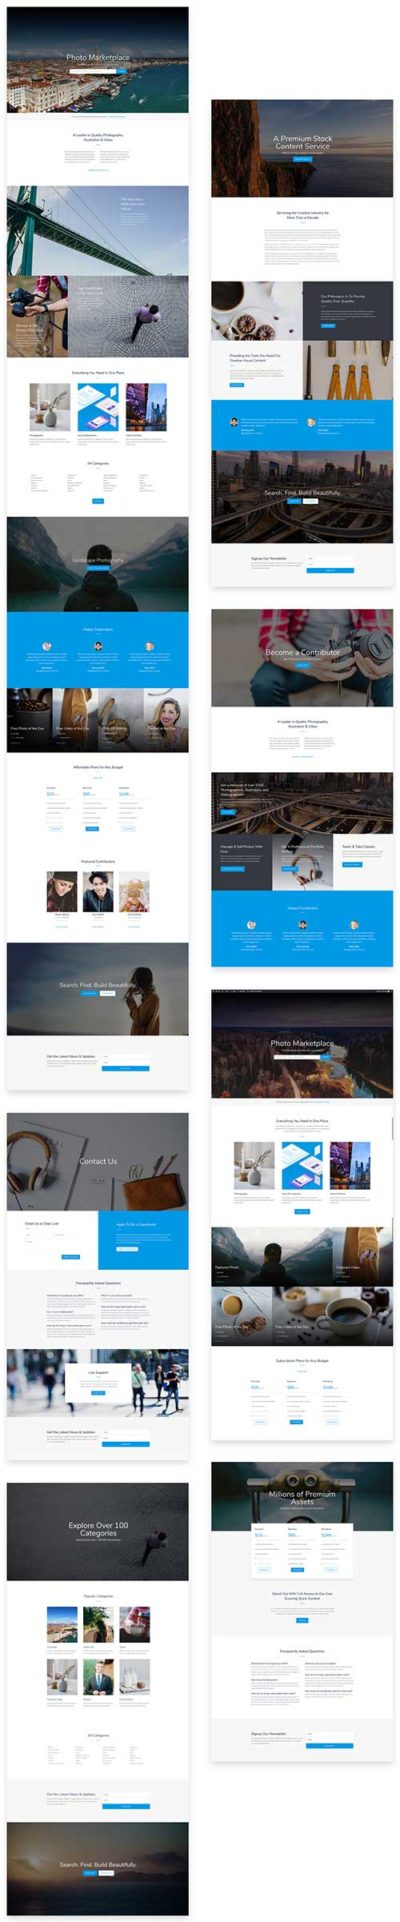 free divi layout for photo marketplace shop